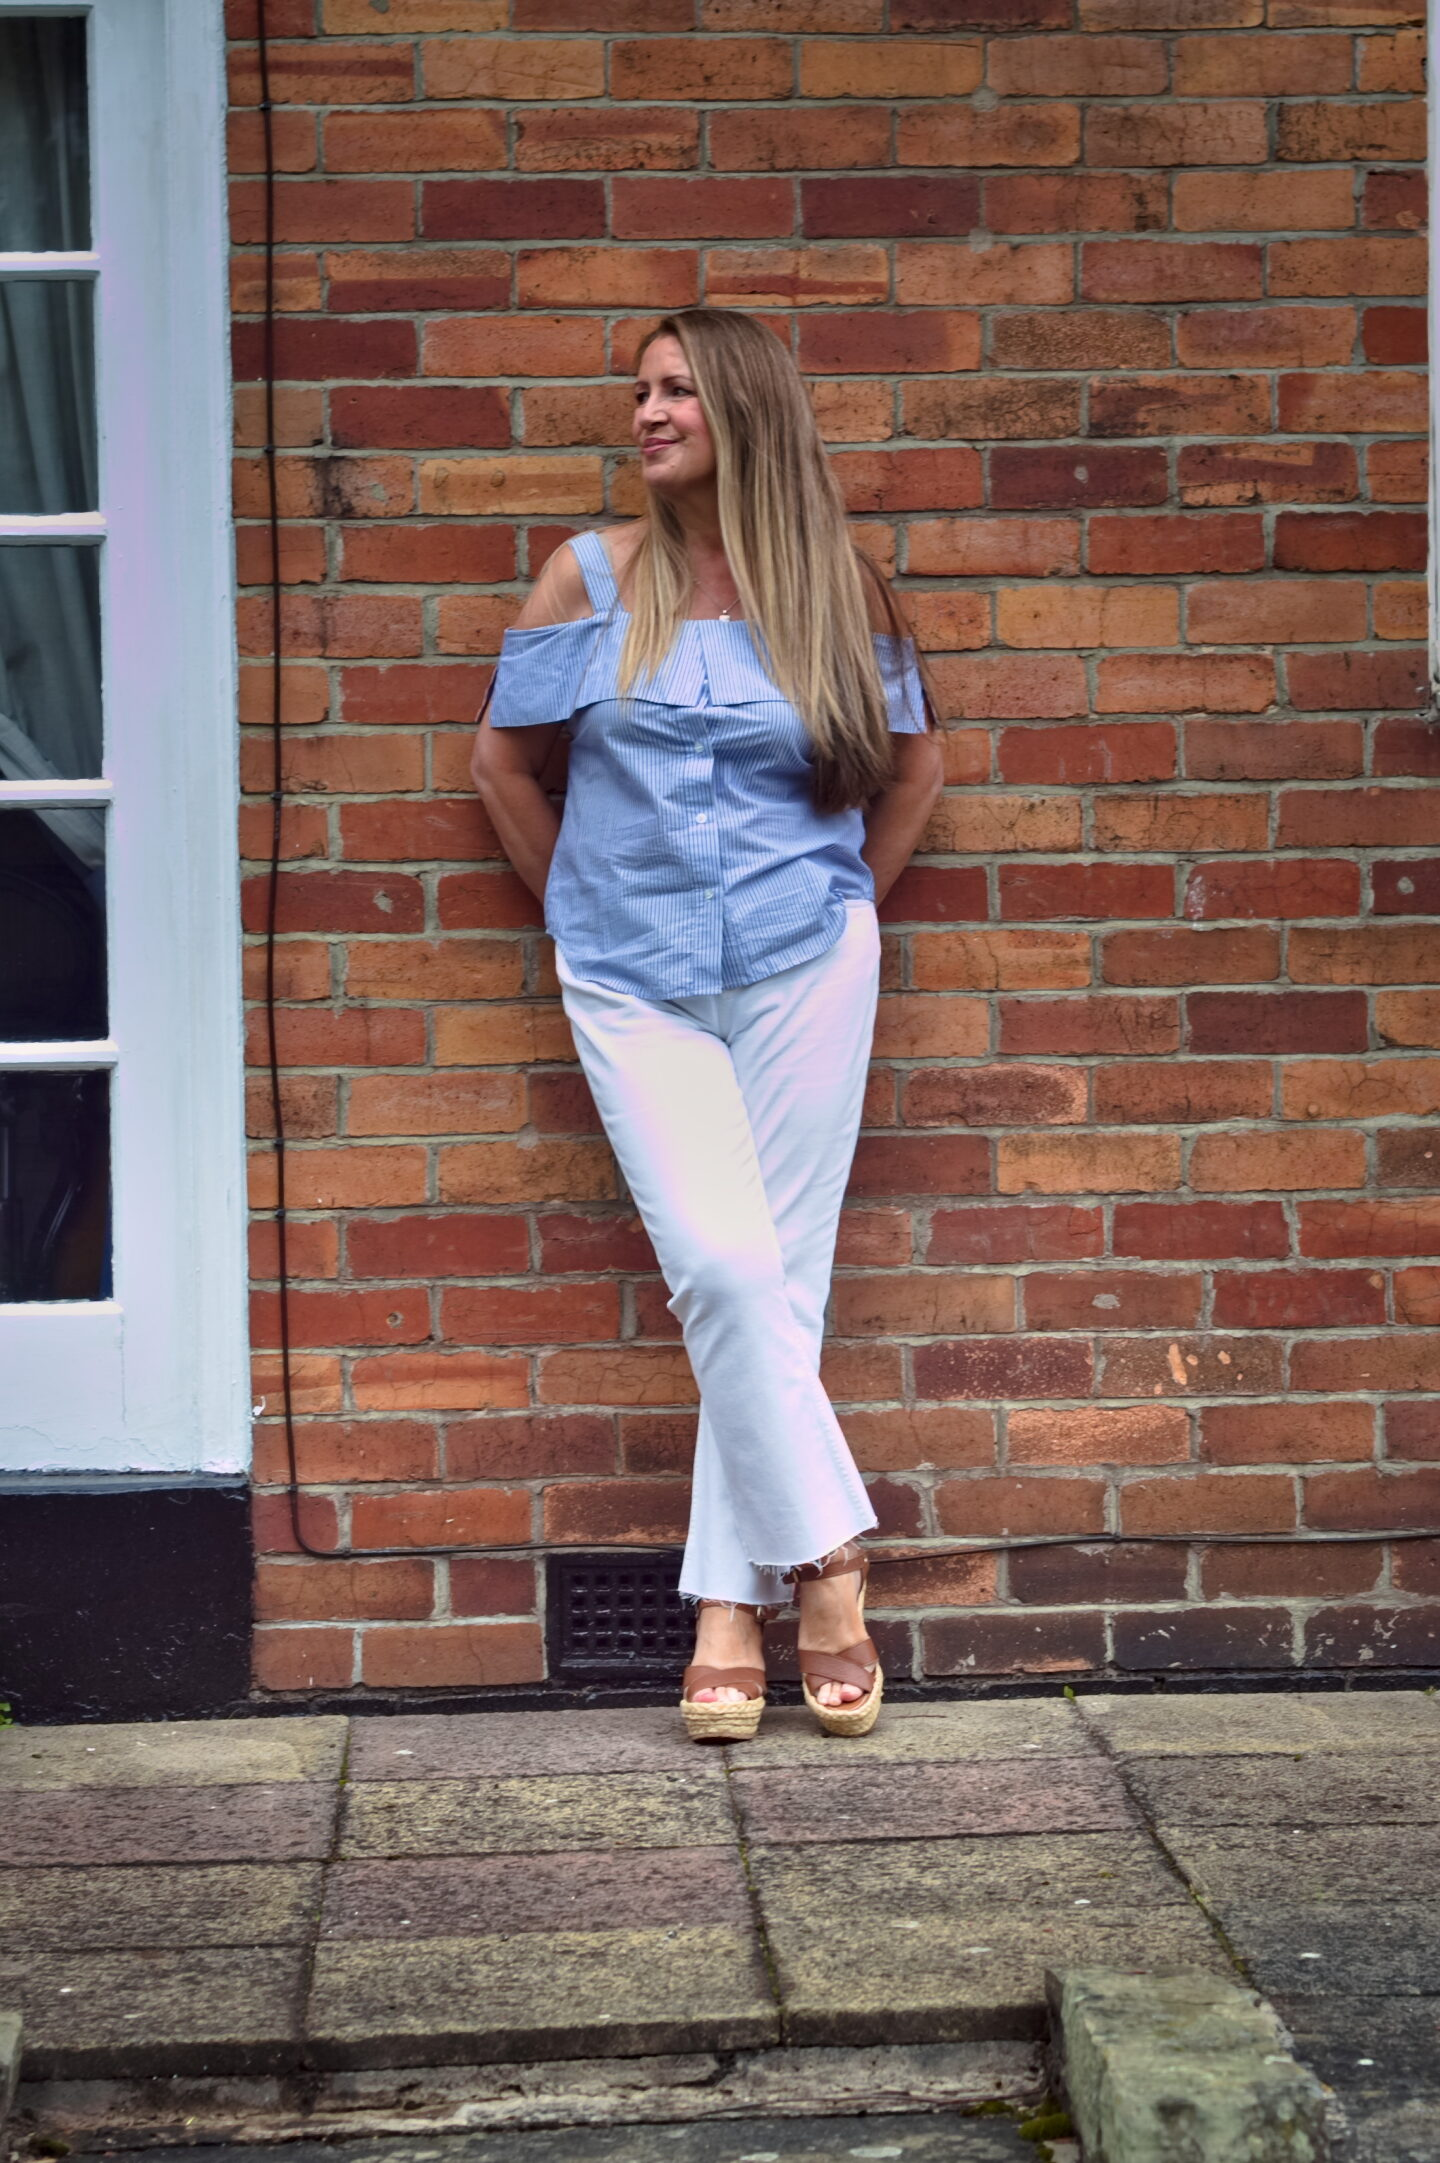 Jeans – Finding My Perfect Pair (4th August 2020)